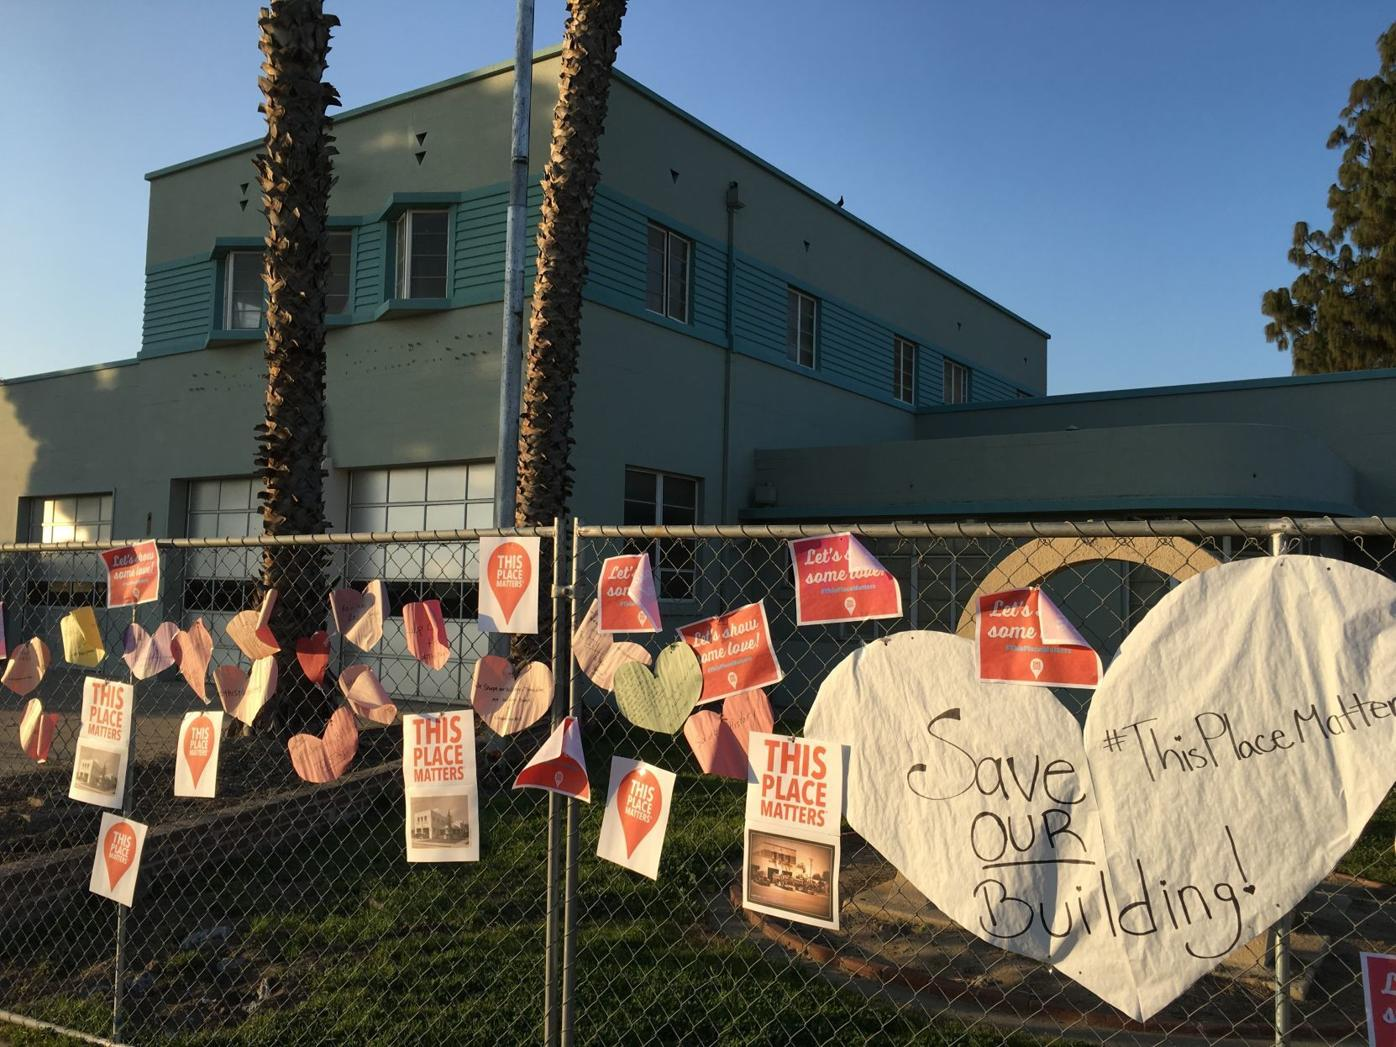 Valley Vertigo: It's been 2 years since the old fire station was destroyed